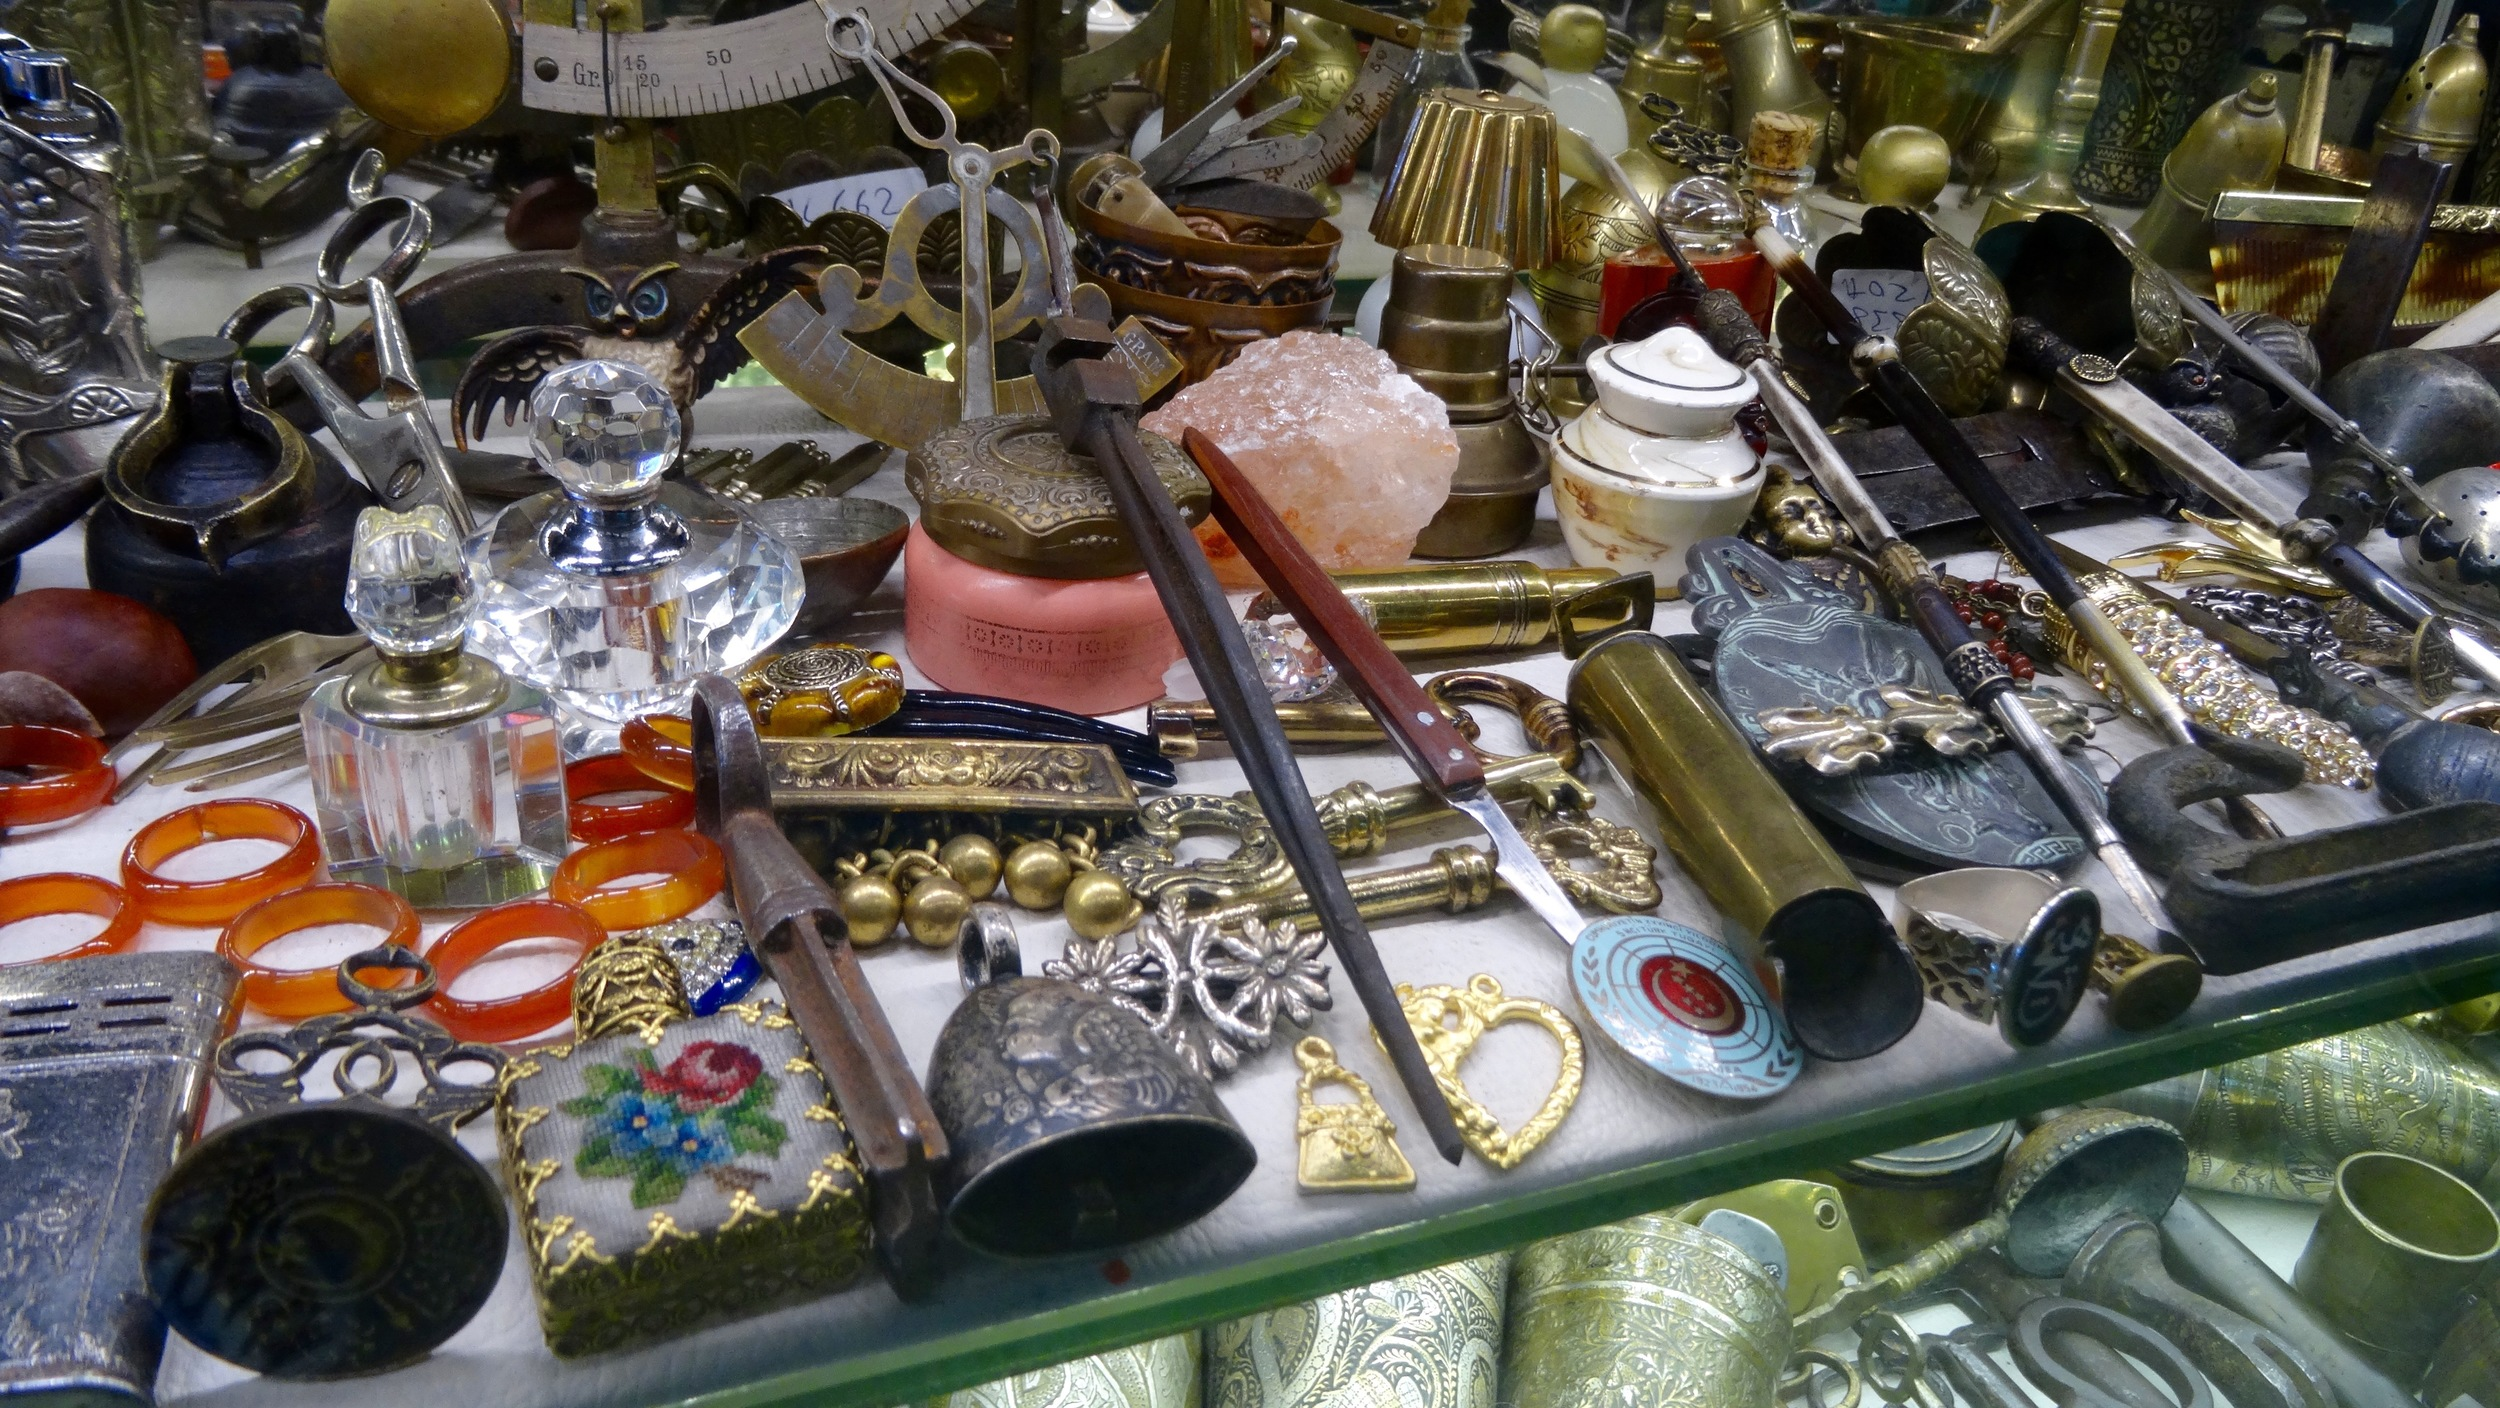 Antique trinquets left over from hundreds of years of bartering in the Grand Bazaar